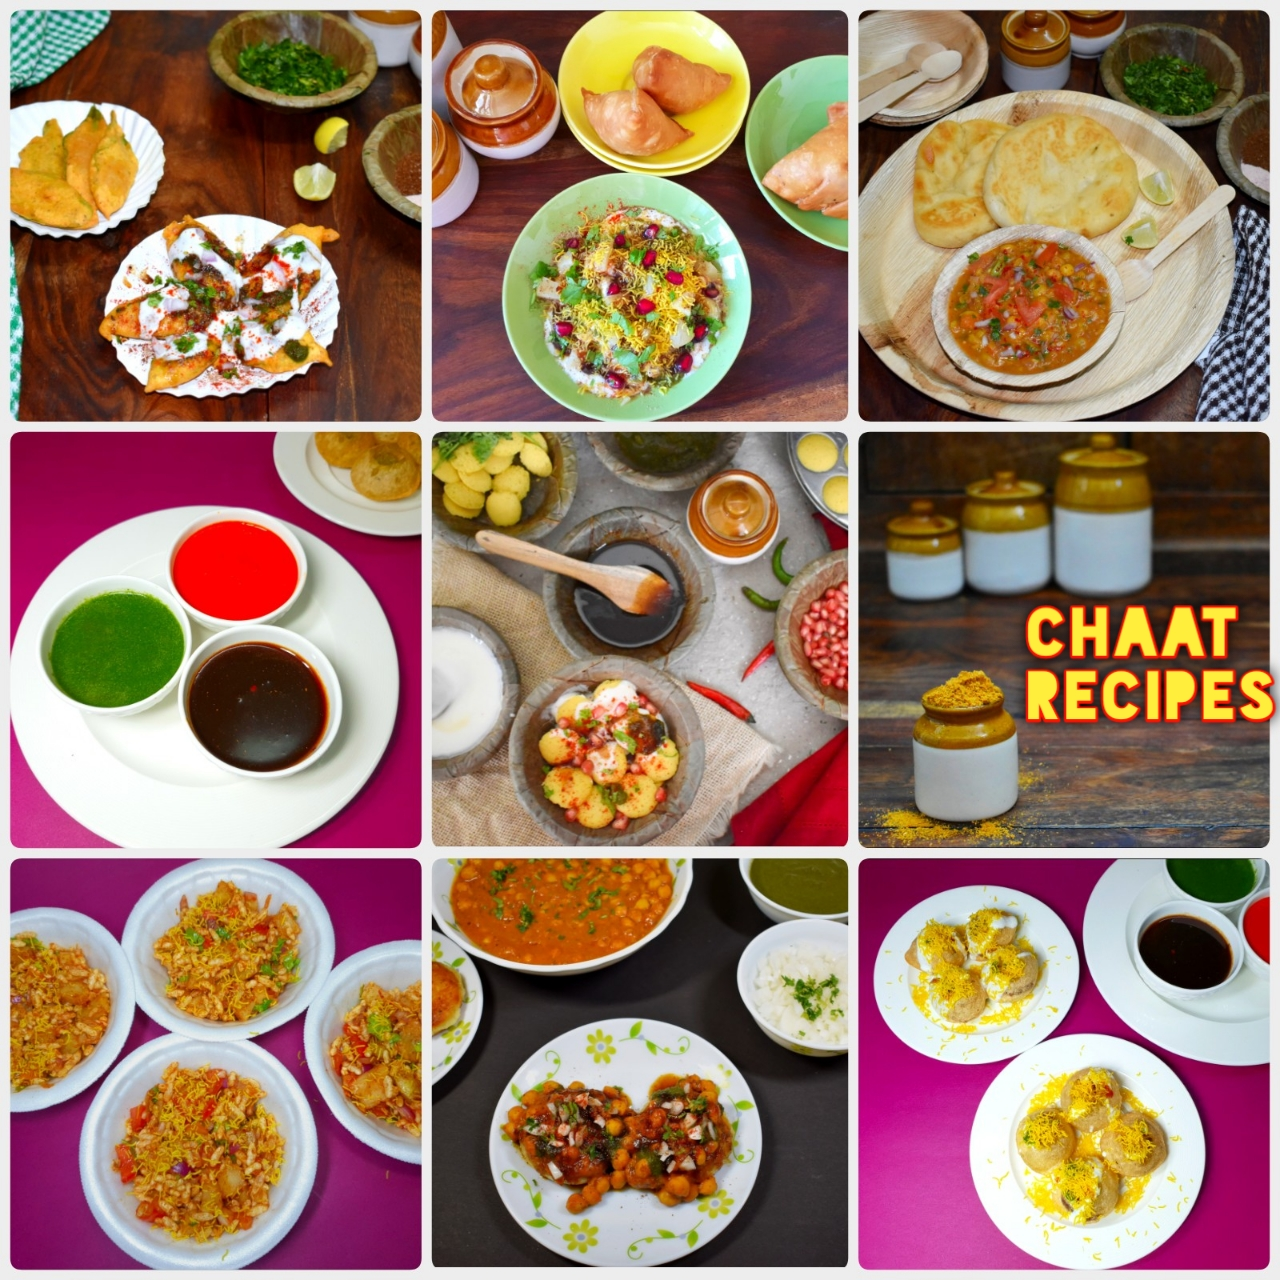 chaat recipes